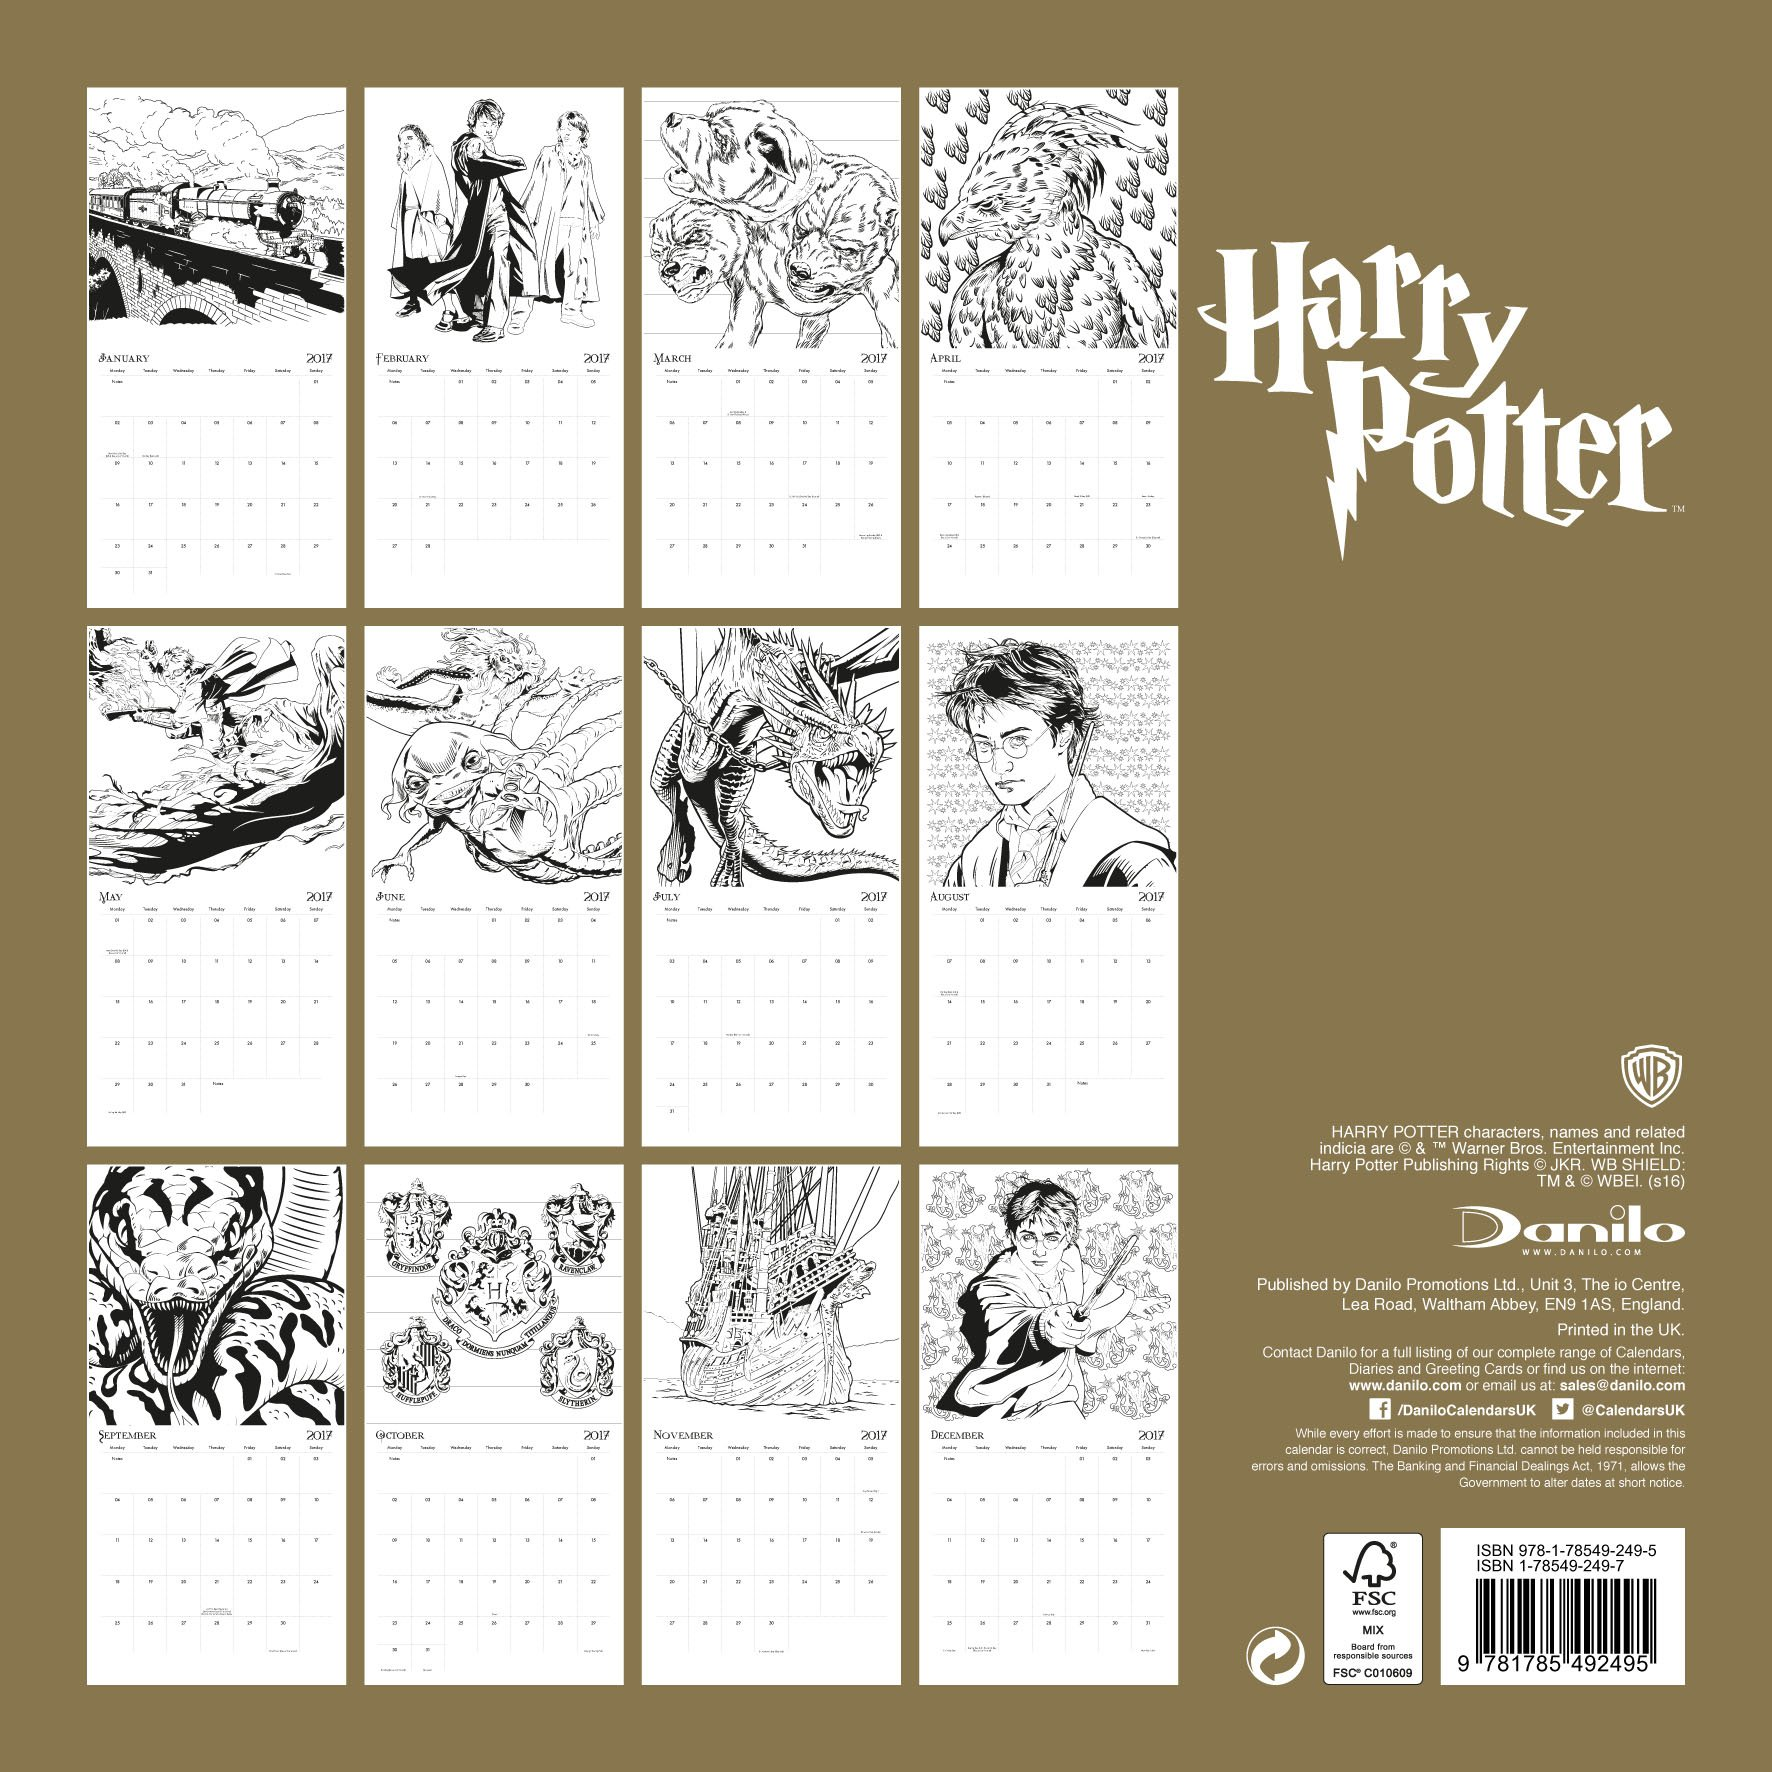 Harry Potter (Colouring in) Official 2017 Calendar: Amazon ...